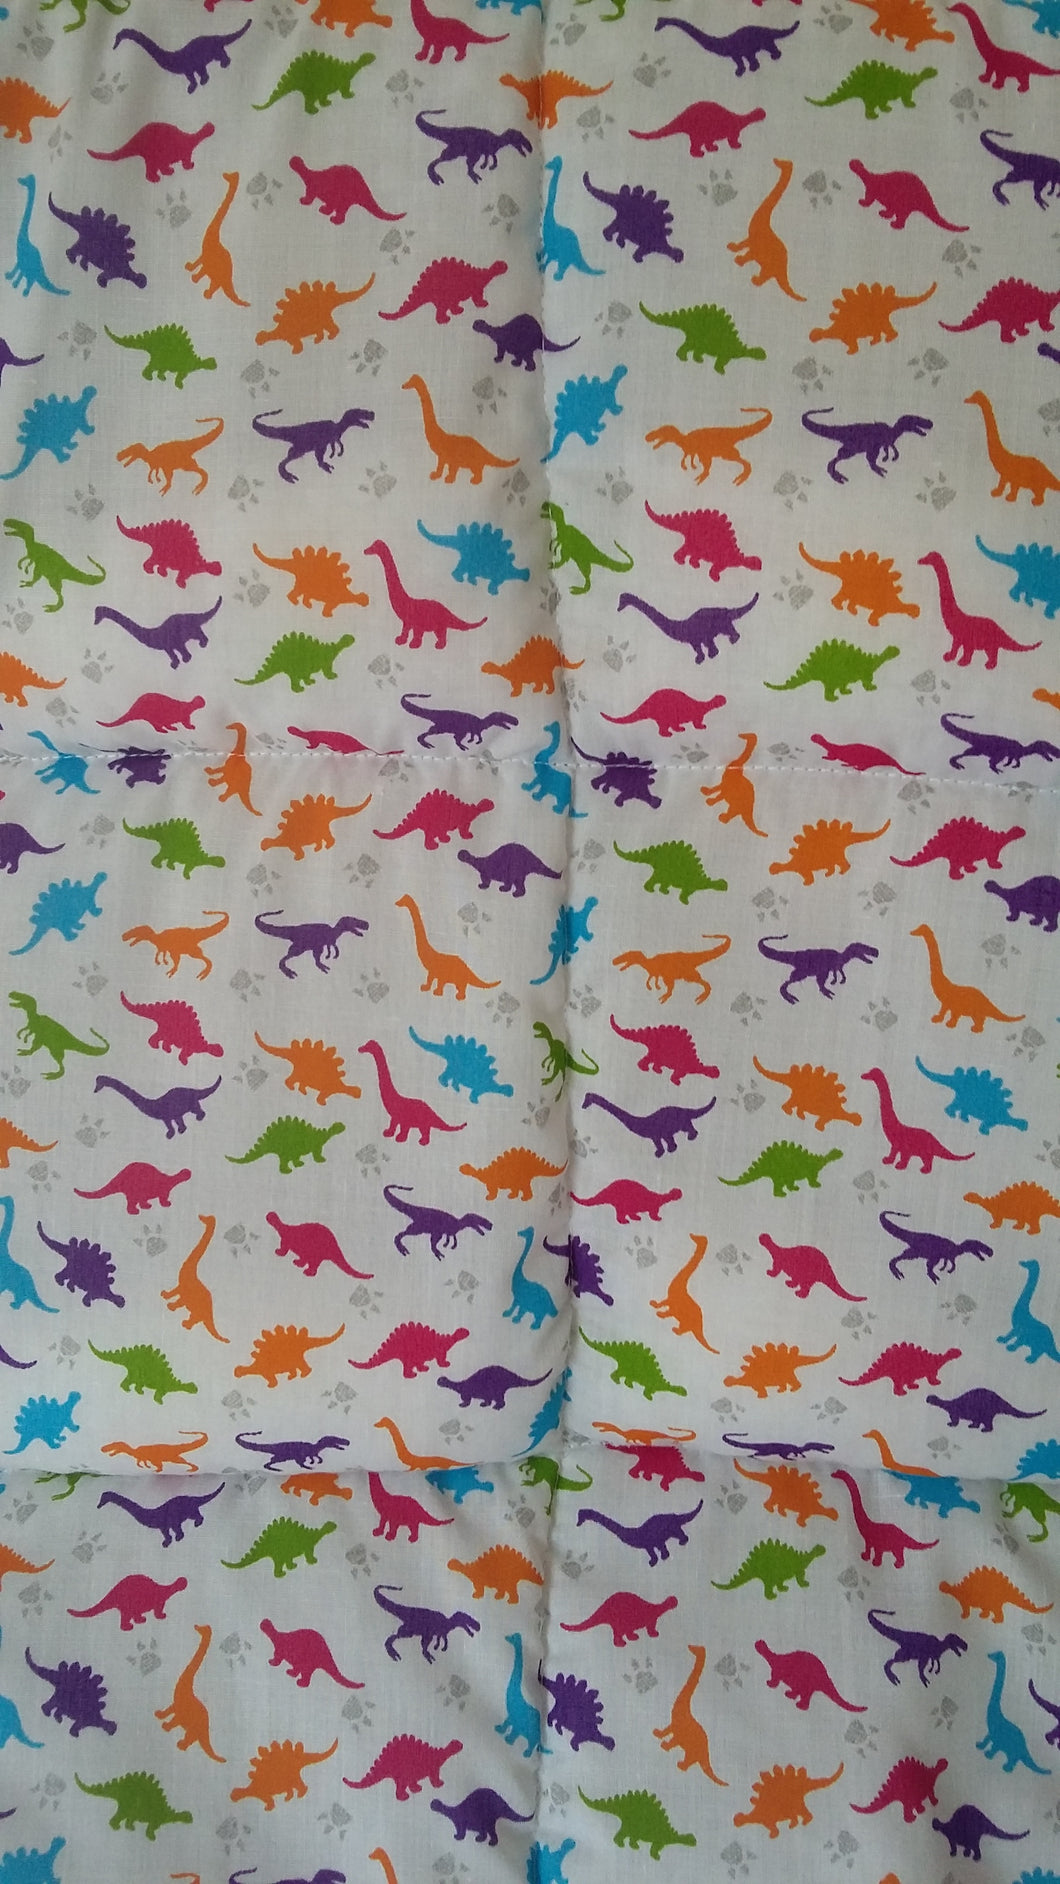 4-10Ib Dinosour Junior bed size weighted blanket